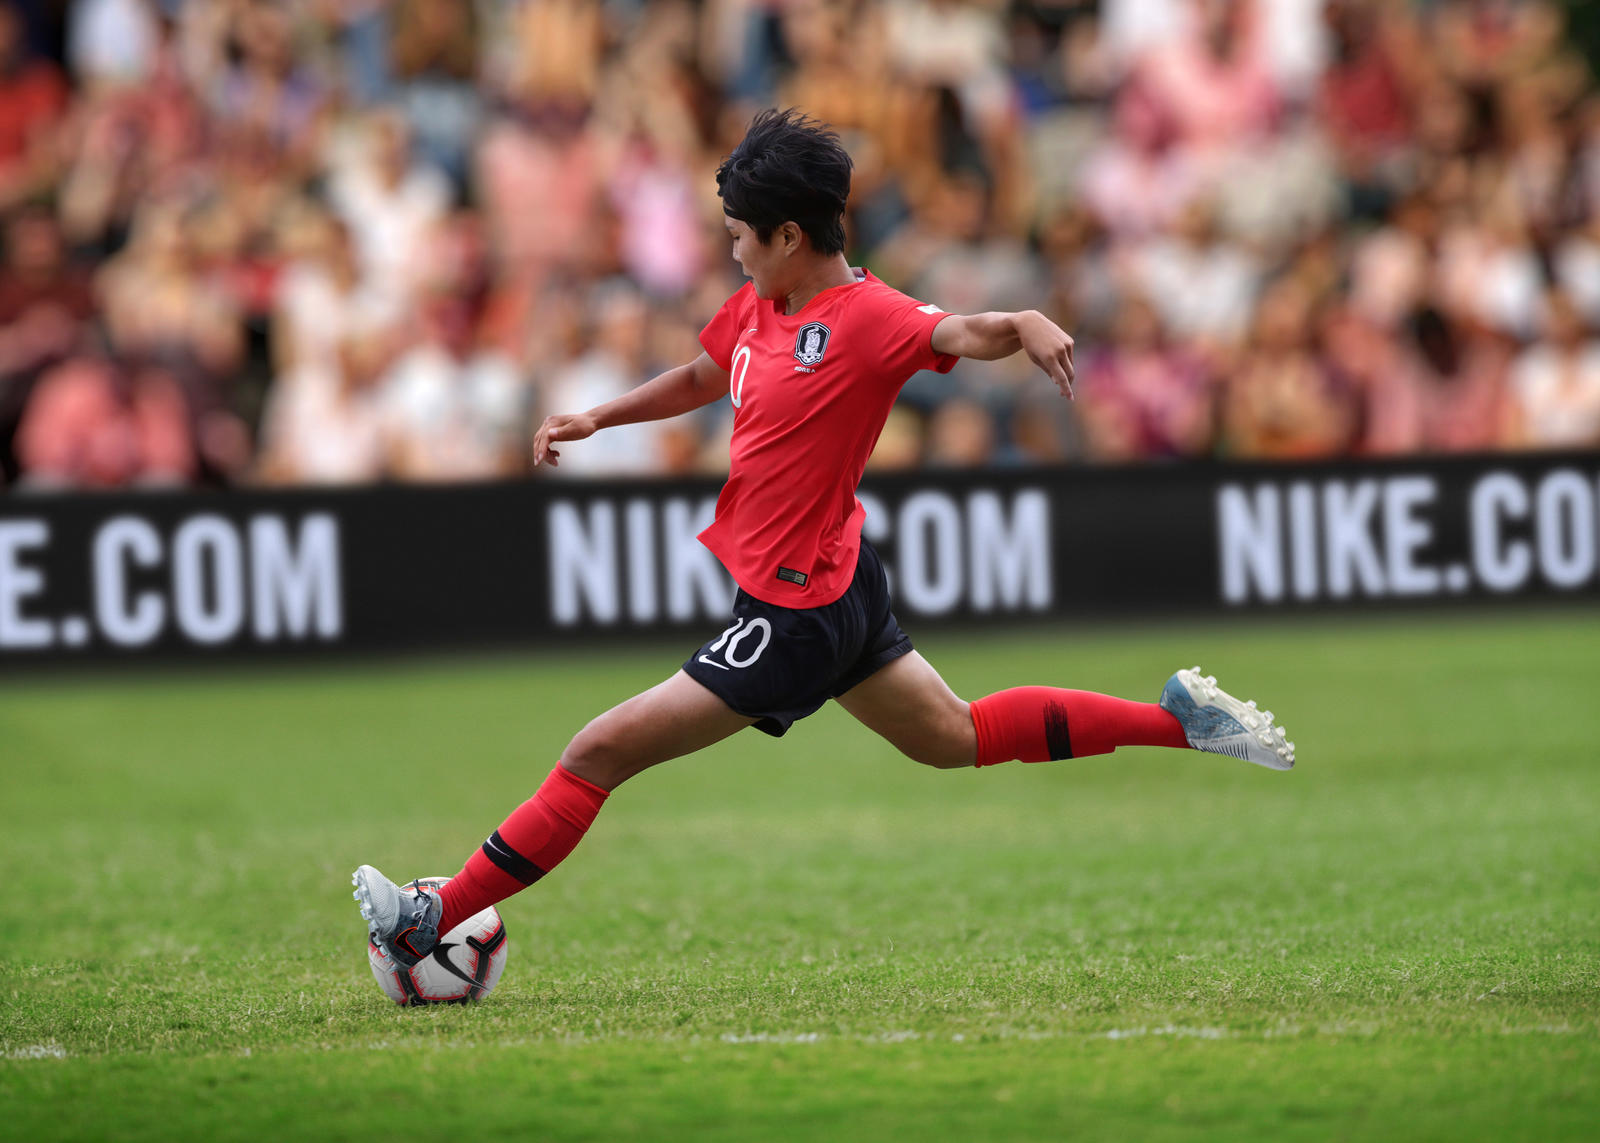 South Korea National Team Kit 2019 5